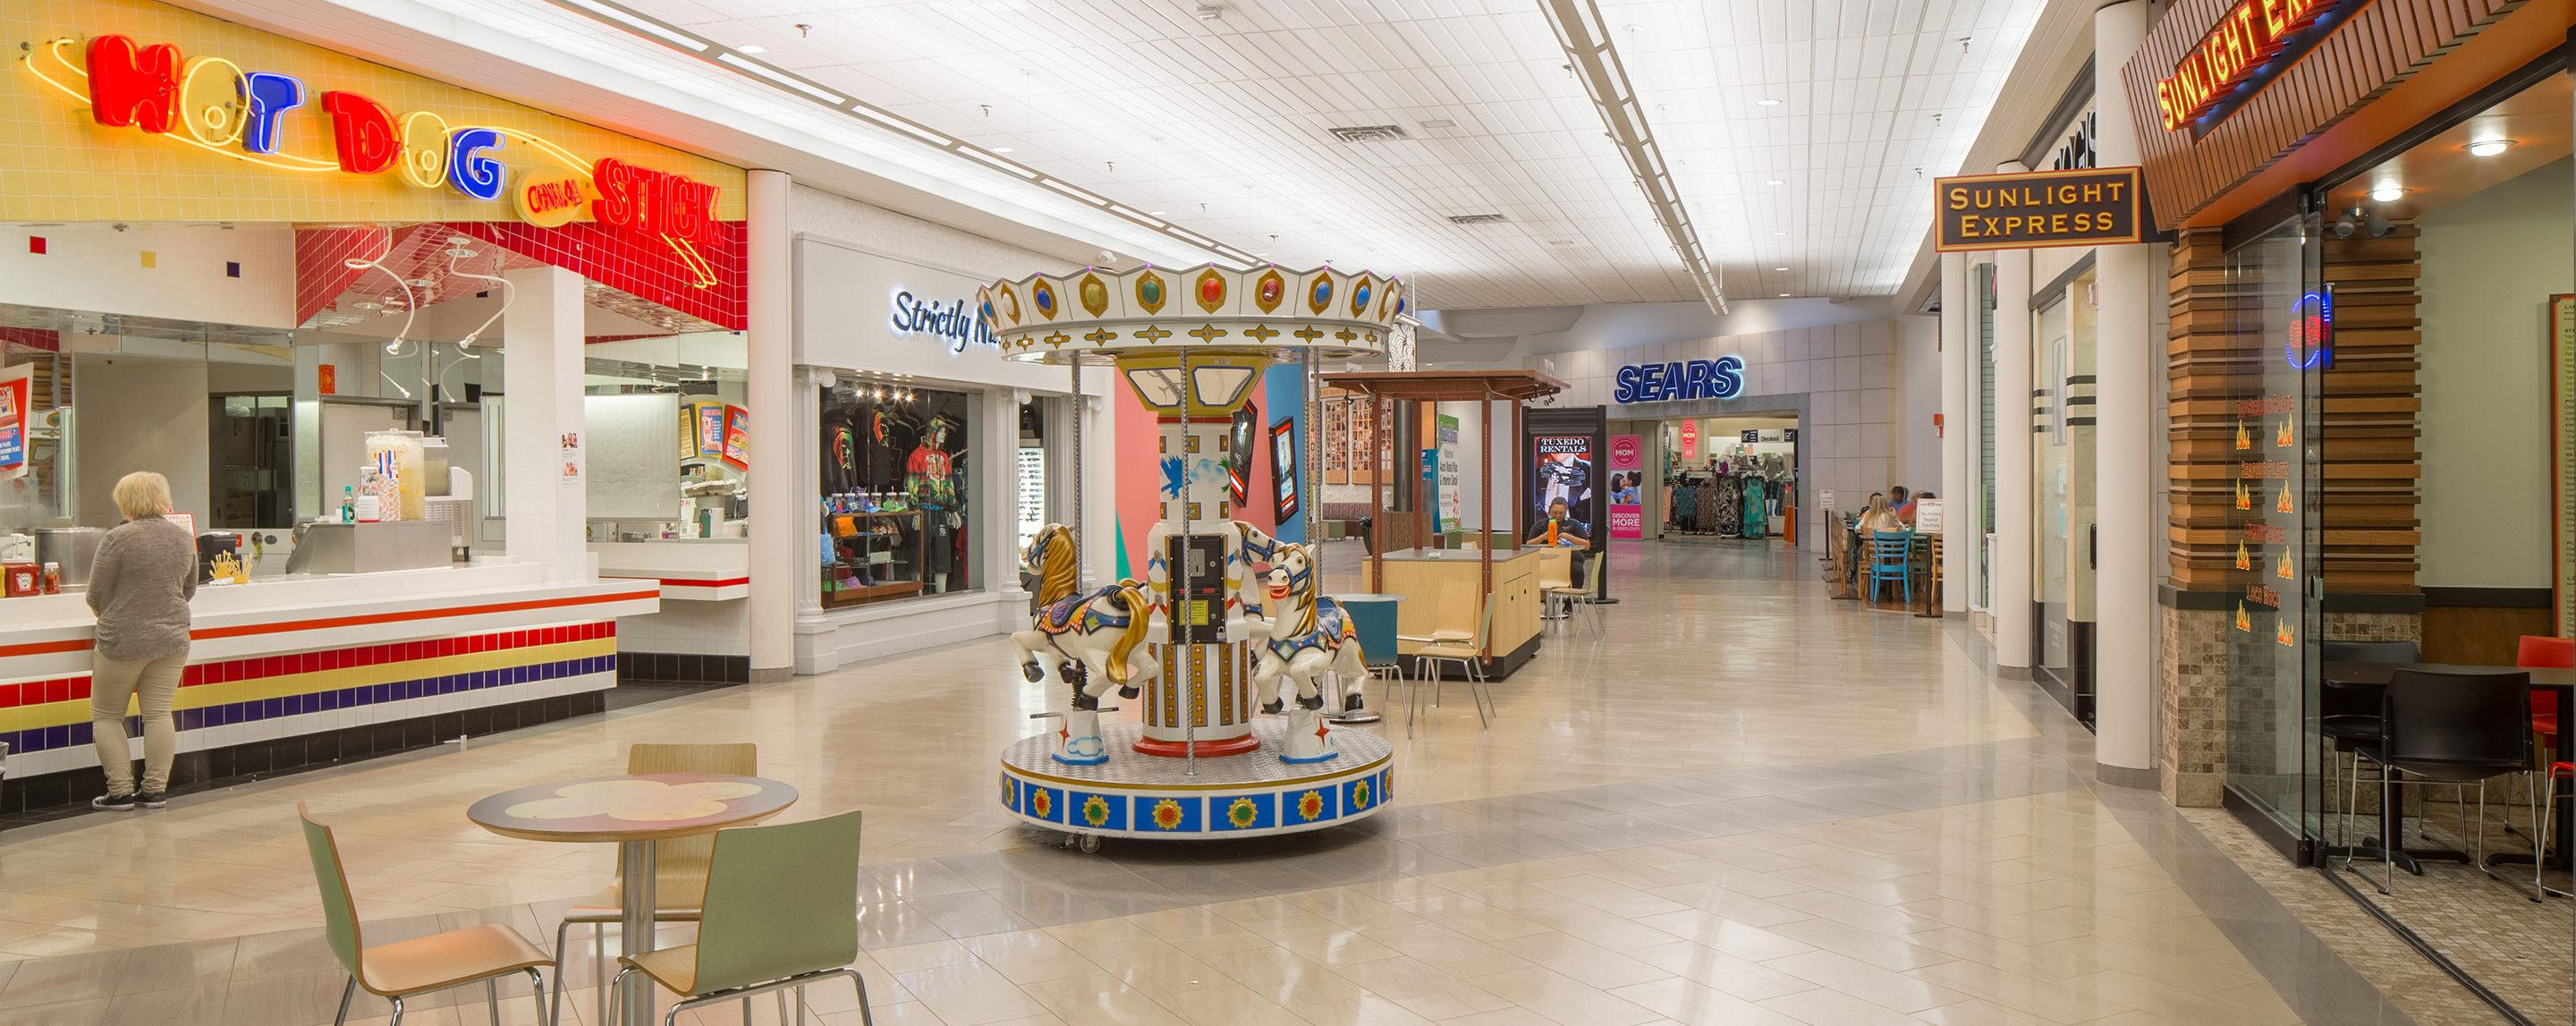 A children's ride can be seen the hallway of an indoor mall. A Sears storefront stands in the backgroudn.